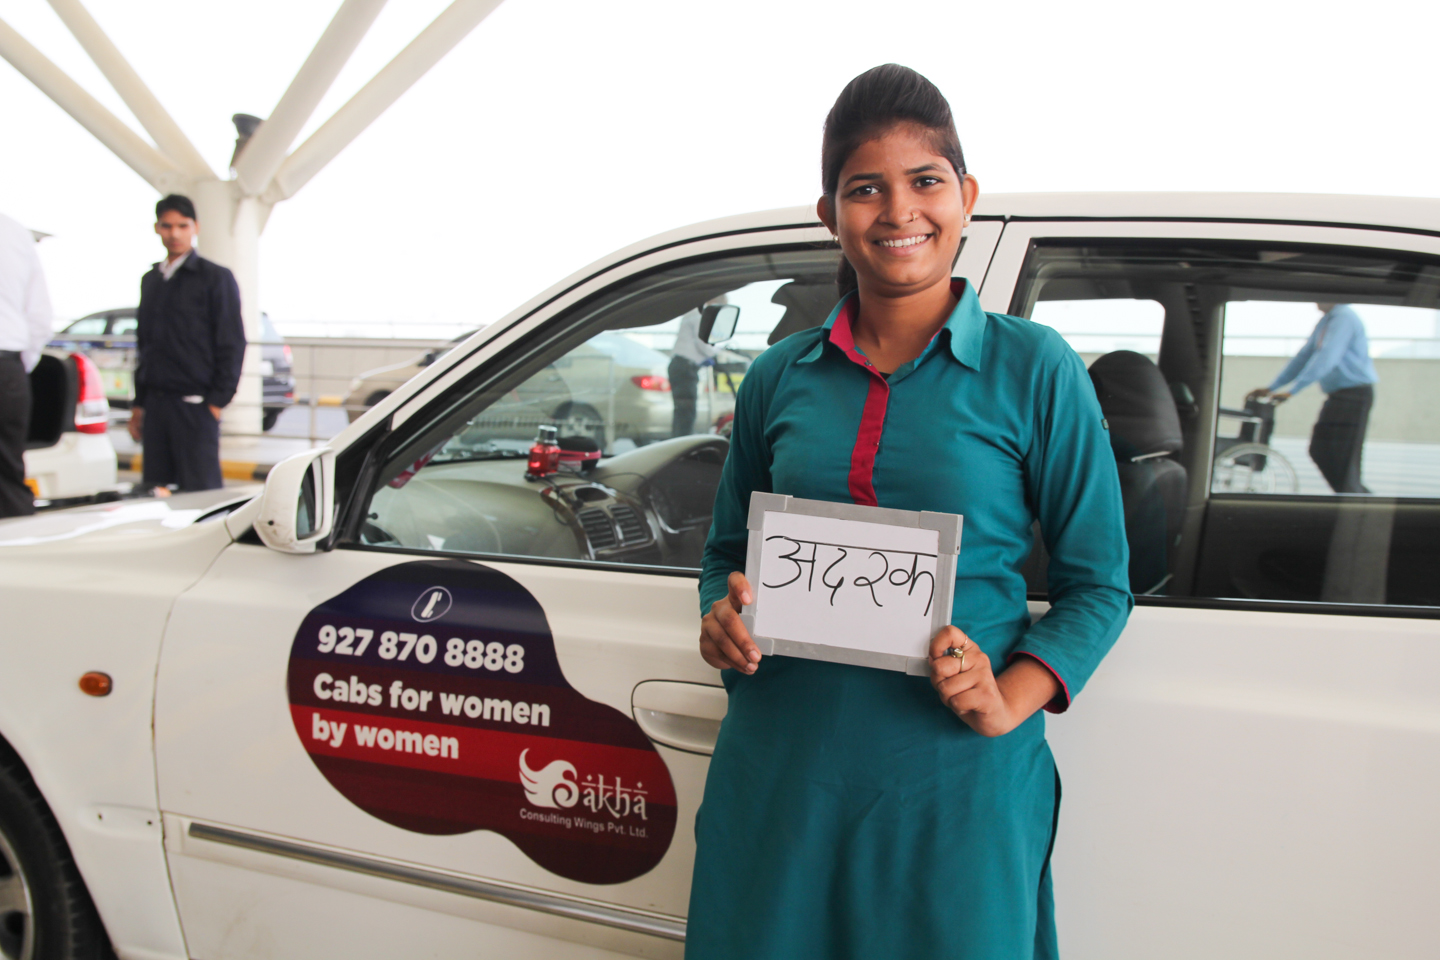 For four years, Khushi has been a driver for Sakha Cabs for Women, safely transporting women in and around Delhi. Originally from Jhansi, Uttar Pradesh, Khushi dreams big. 'I have already learned how to drive cars and commercial buses. If you bring me a plane, then certainly I can learn to drive a plane!'